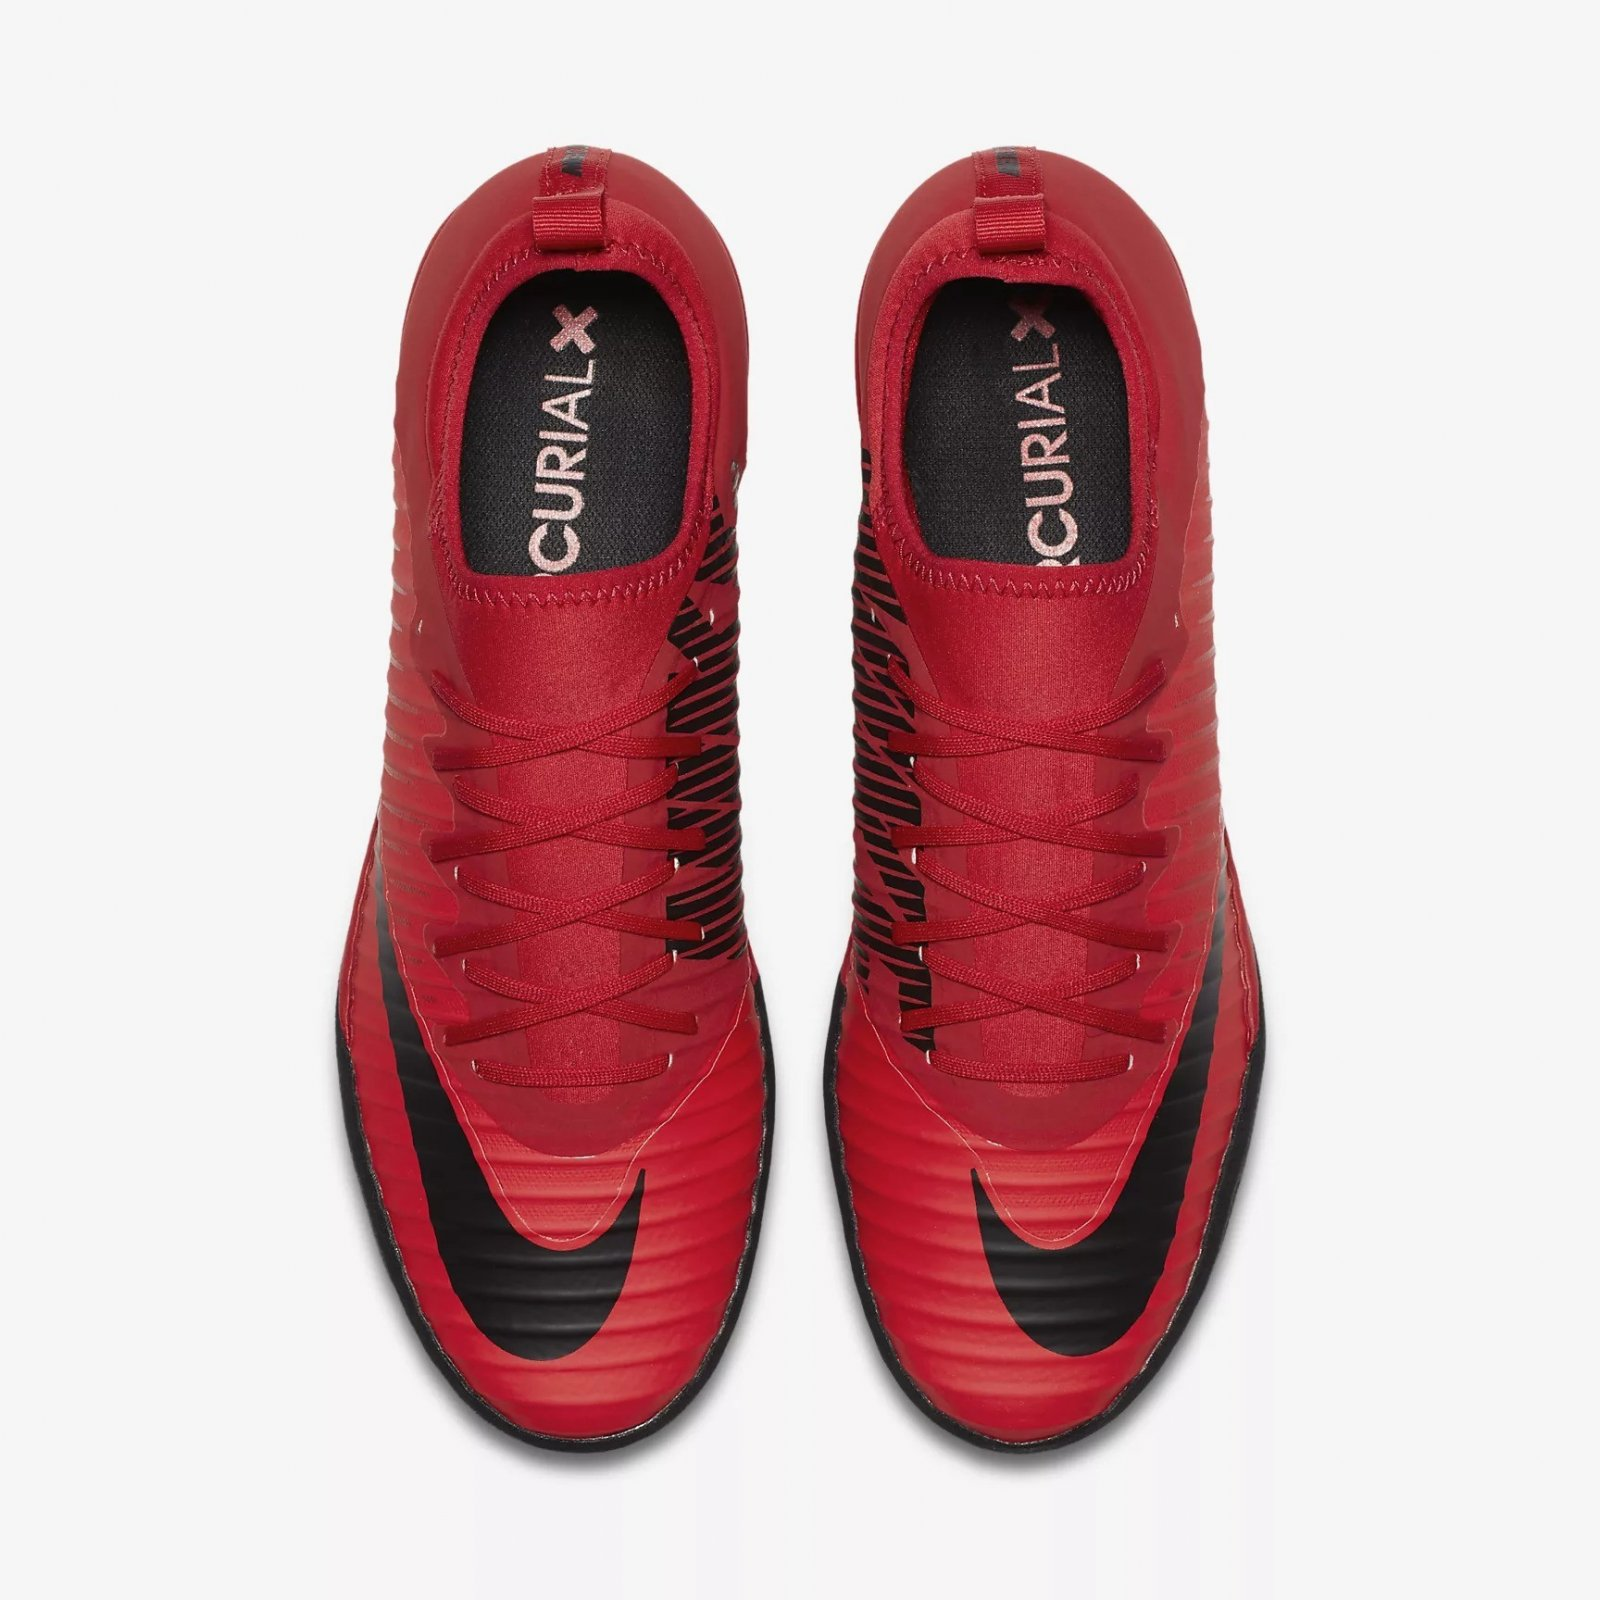 check out a1a6a 20236 ... australia nike mercurialx finale ii tf 831975 616 university red fire  ice 8b353 777d0